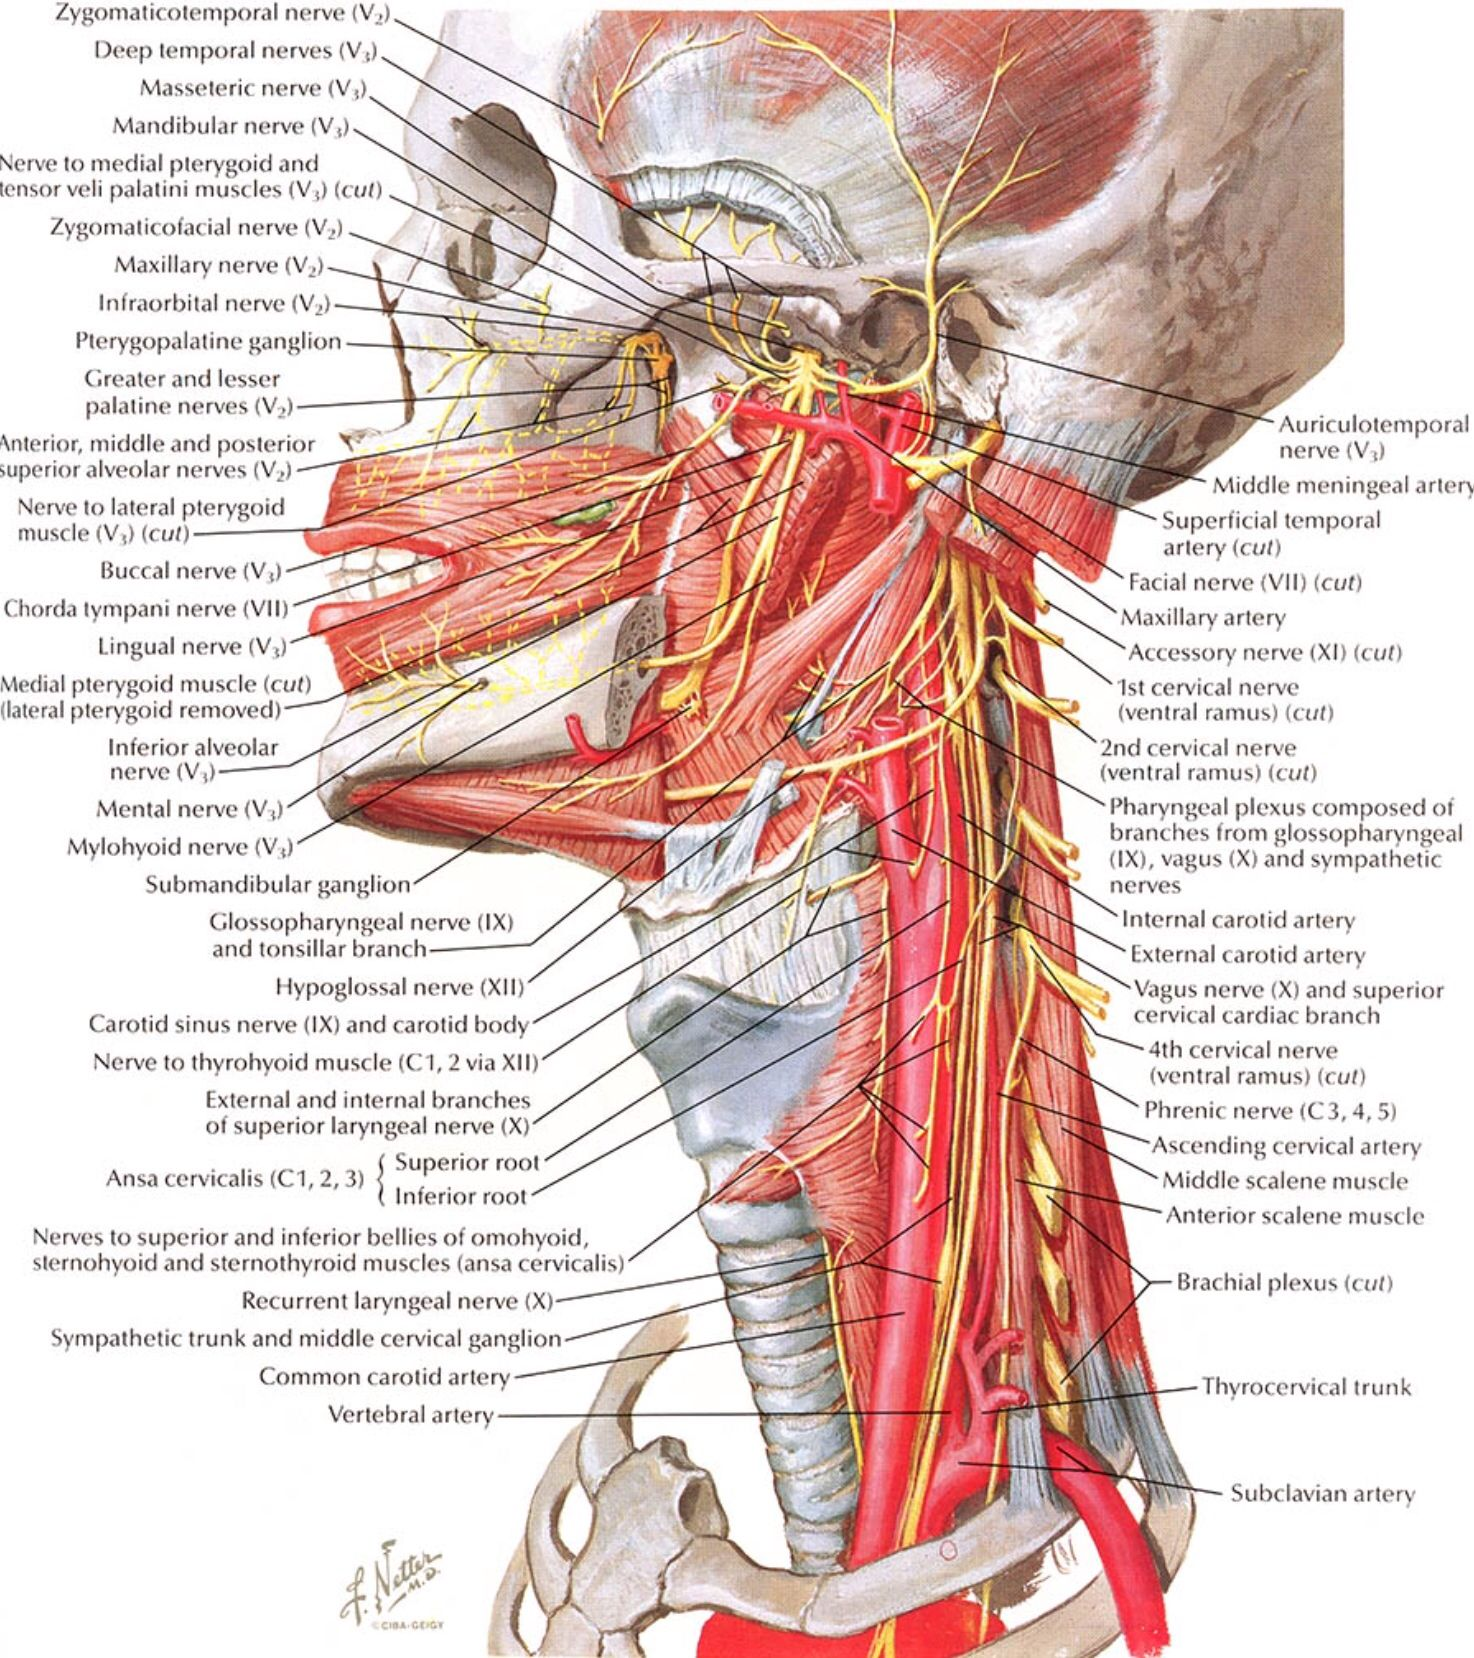 Anatomy of the neck and pharyngeal region - Netter | Anatomy ...